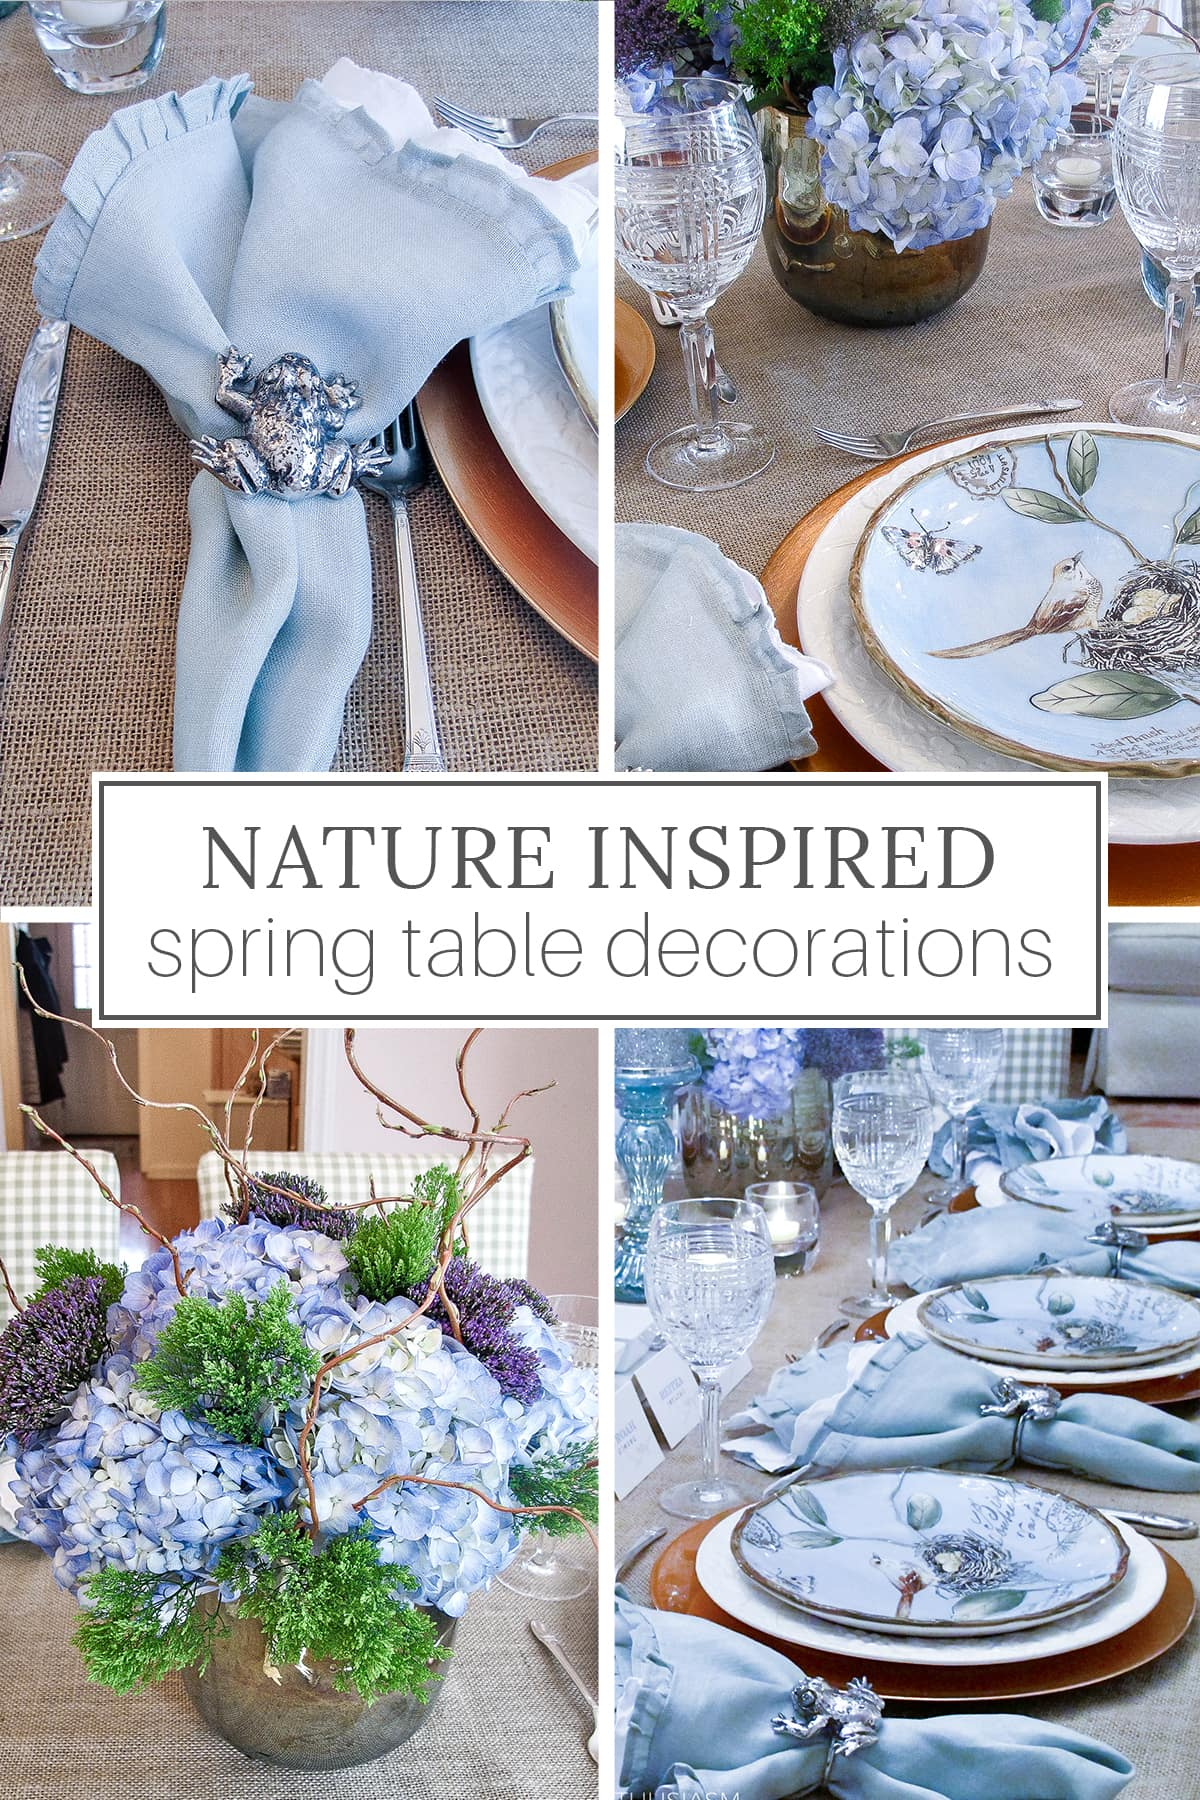 Nature inspired spring table decorations